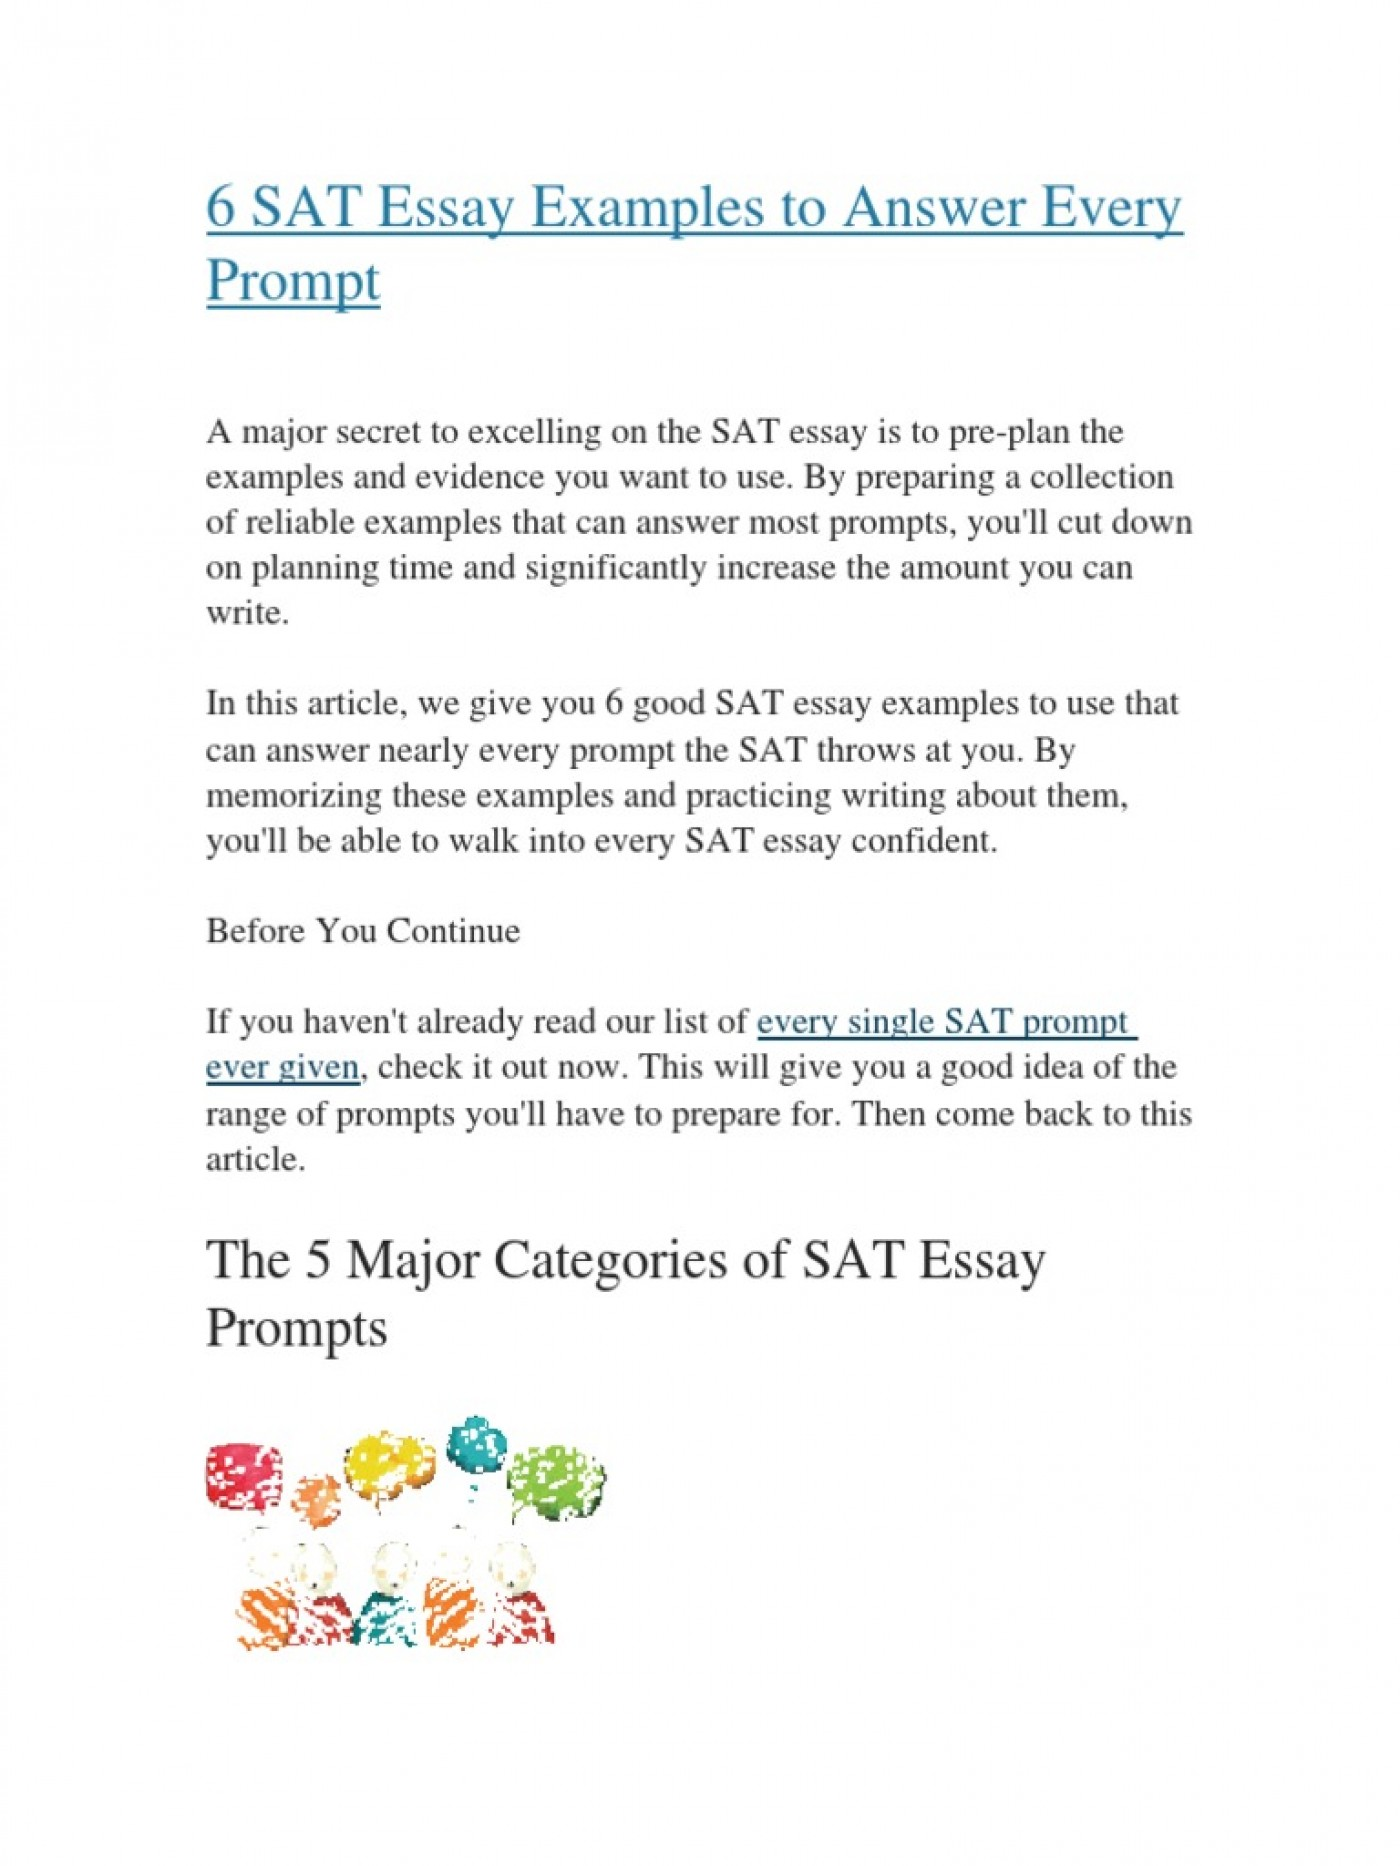 010 Sat Essays To Answer Every Prompt Shooting Of Michael Prompts New Surprising Essay Practice 2016